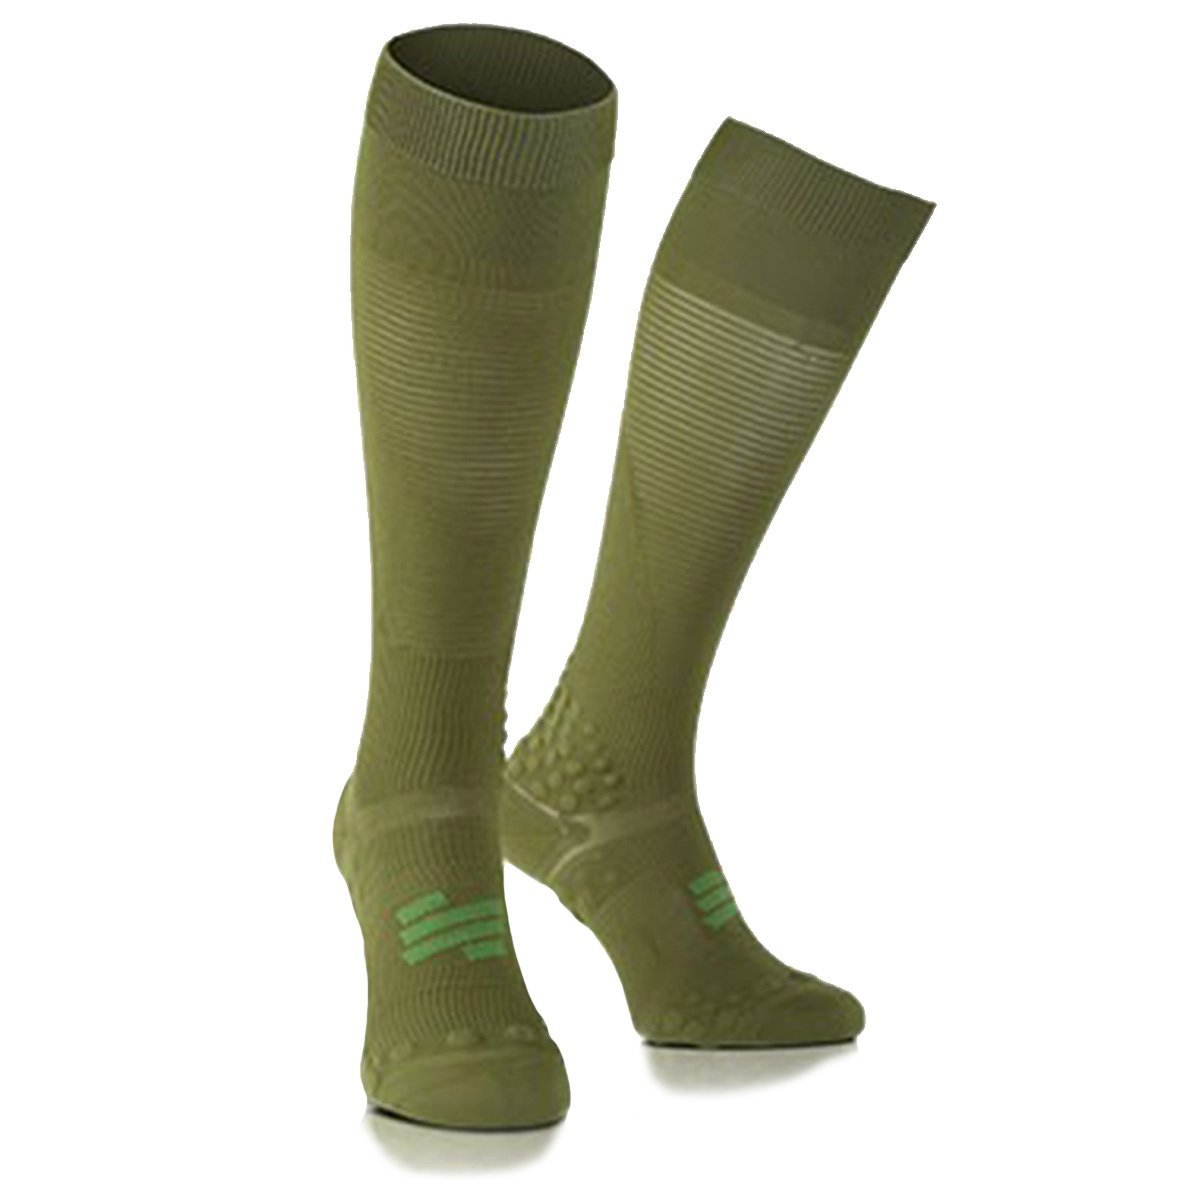 Compressport Tactical Under Control Full Socks | UKMCPro